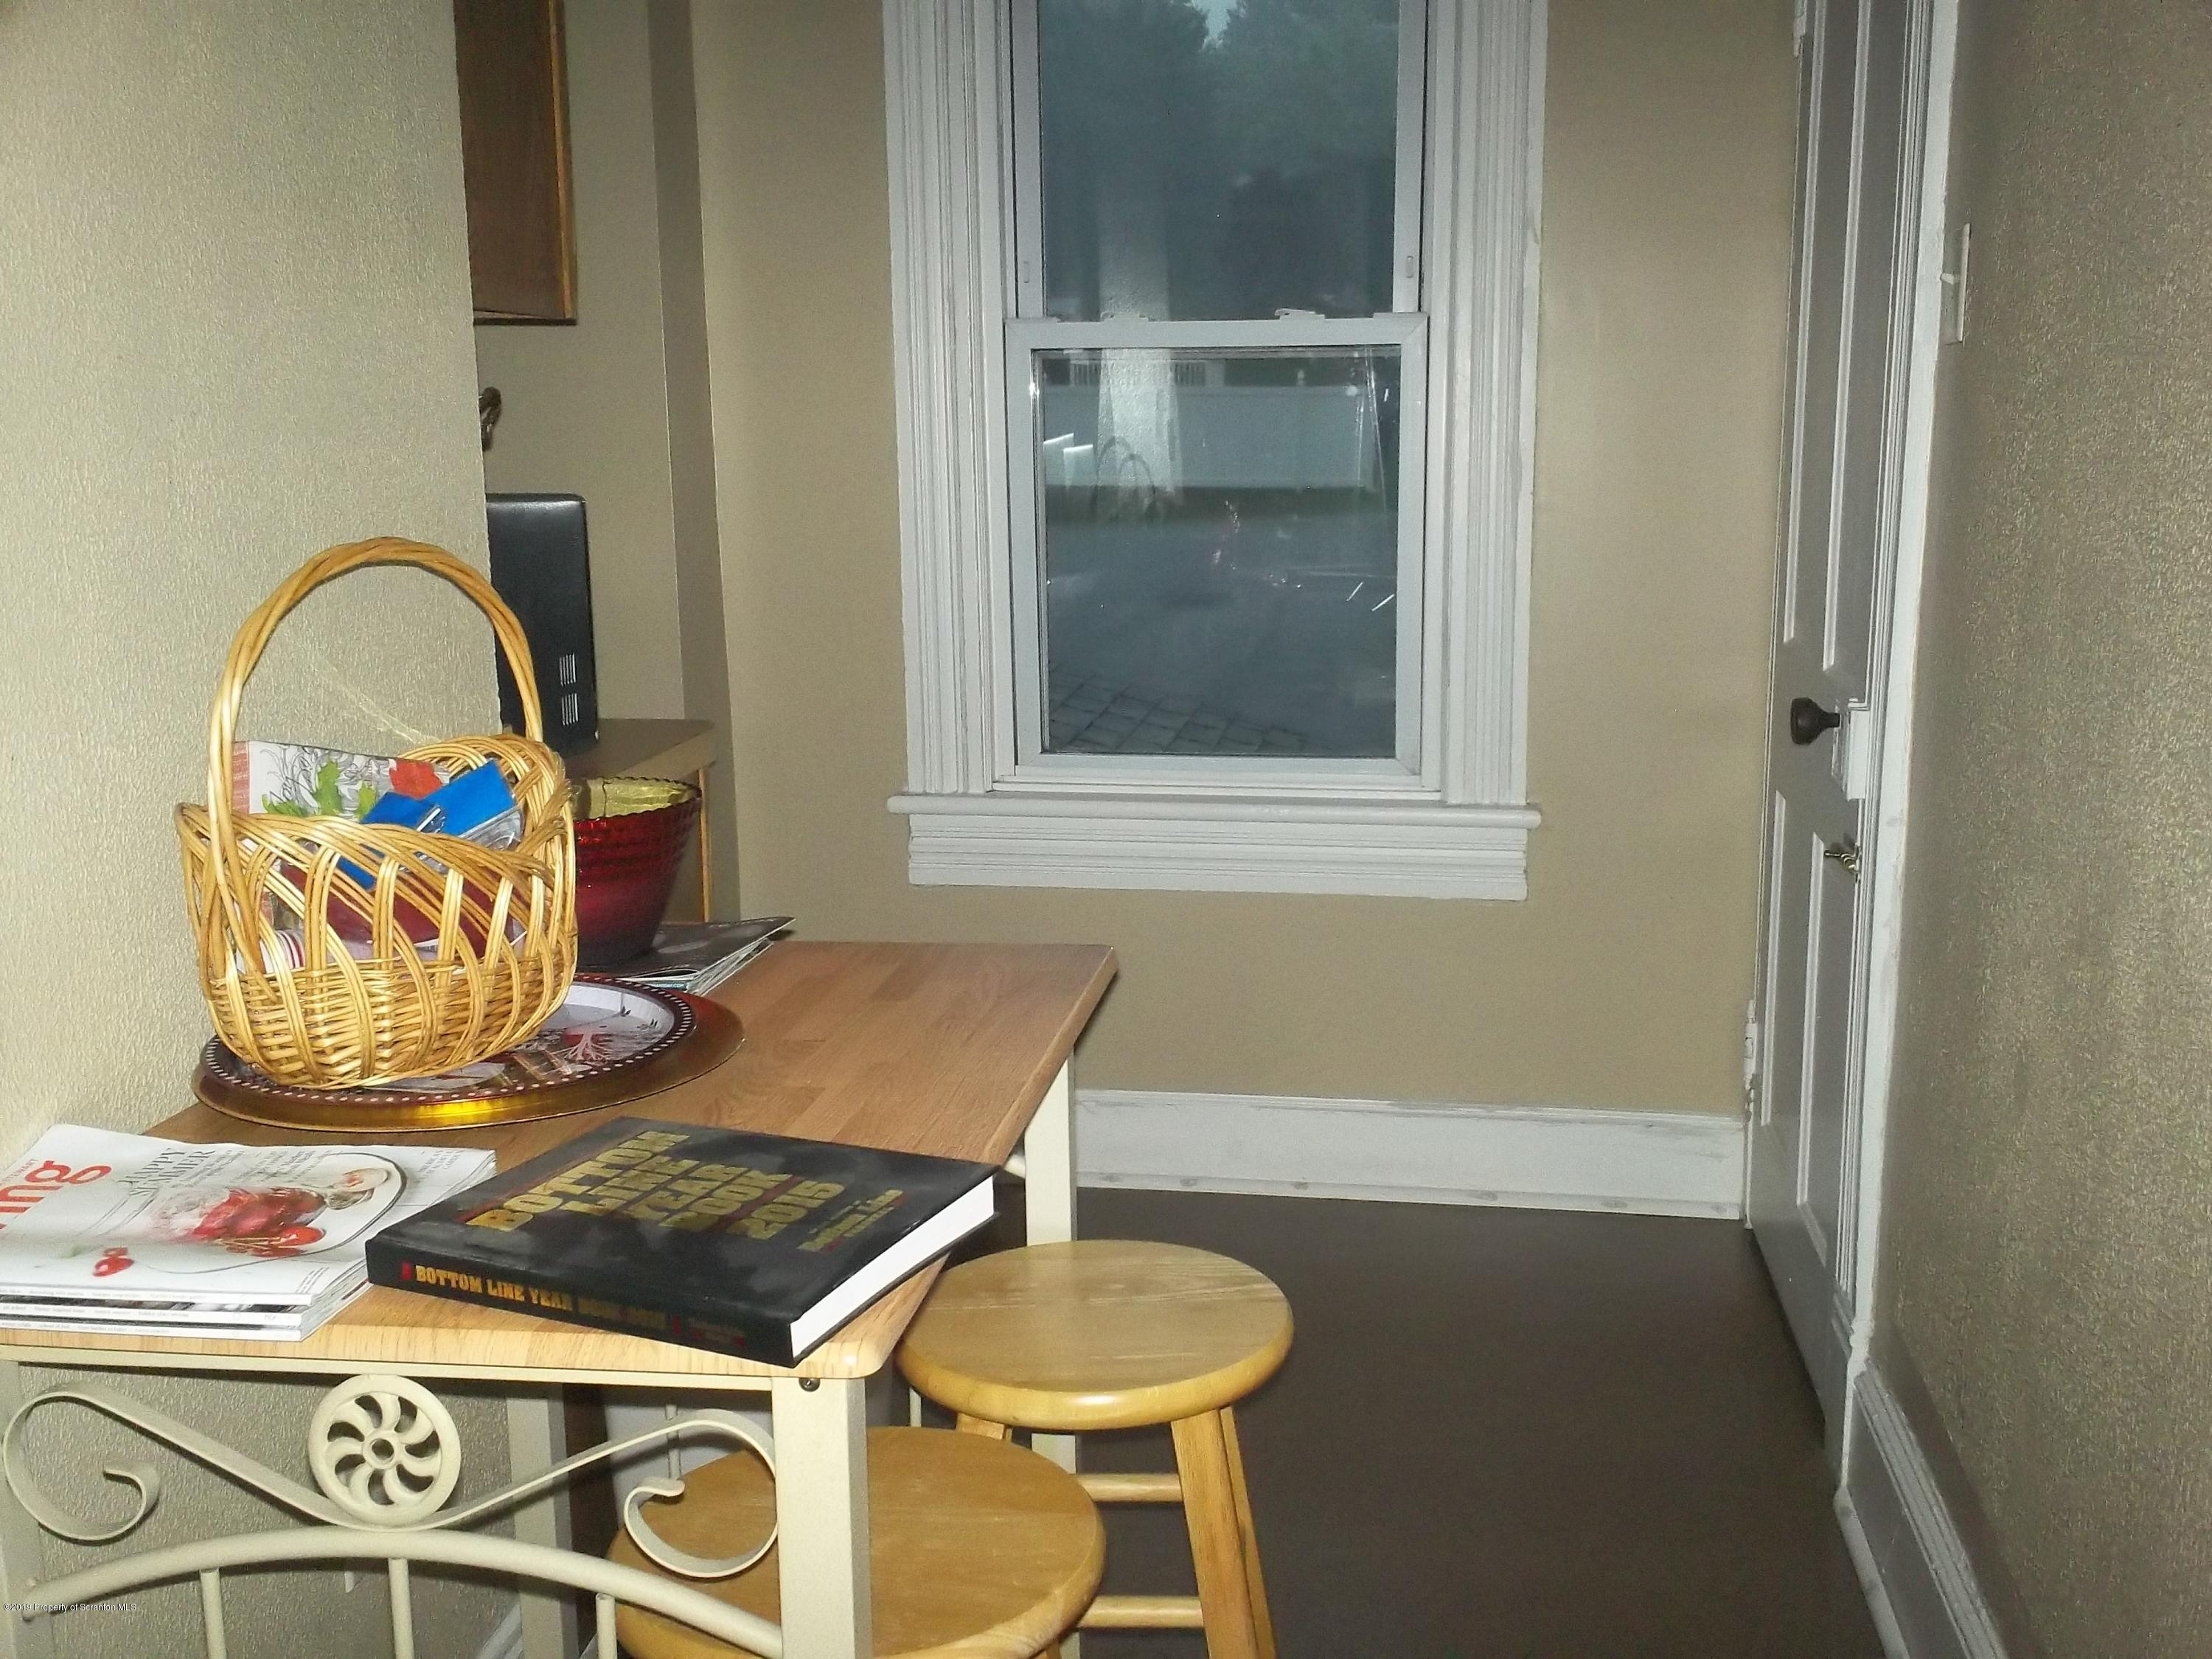 514 Blakely St, Dunmore, Pennsylvania 18512, ,2 BathroomsBathrooms,Commercial,For Sale,Blakely,19-3910